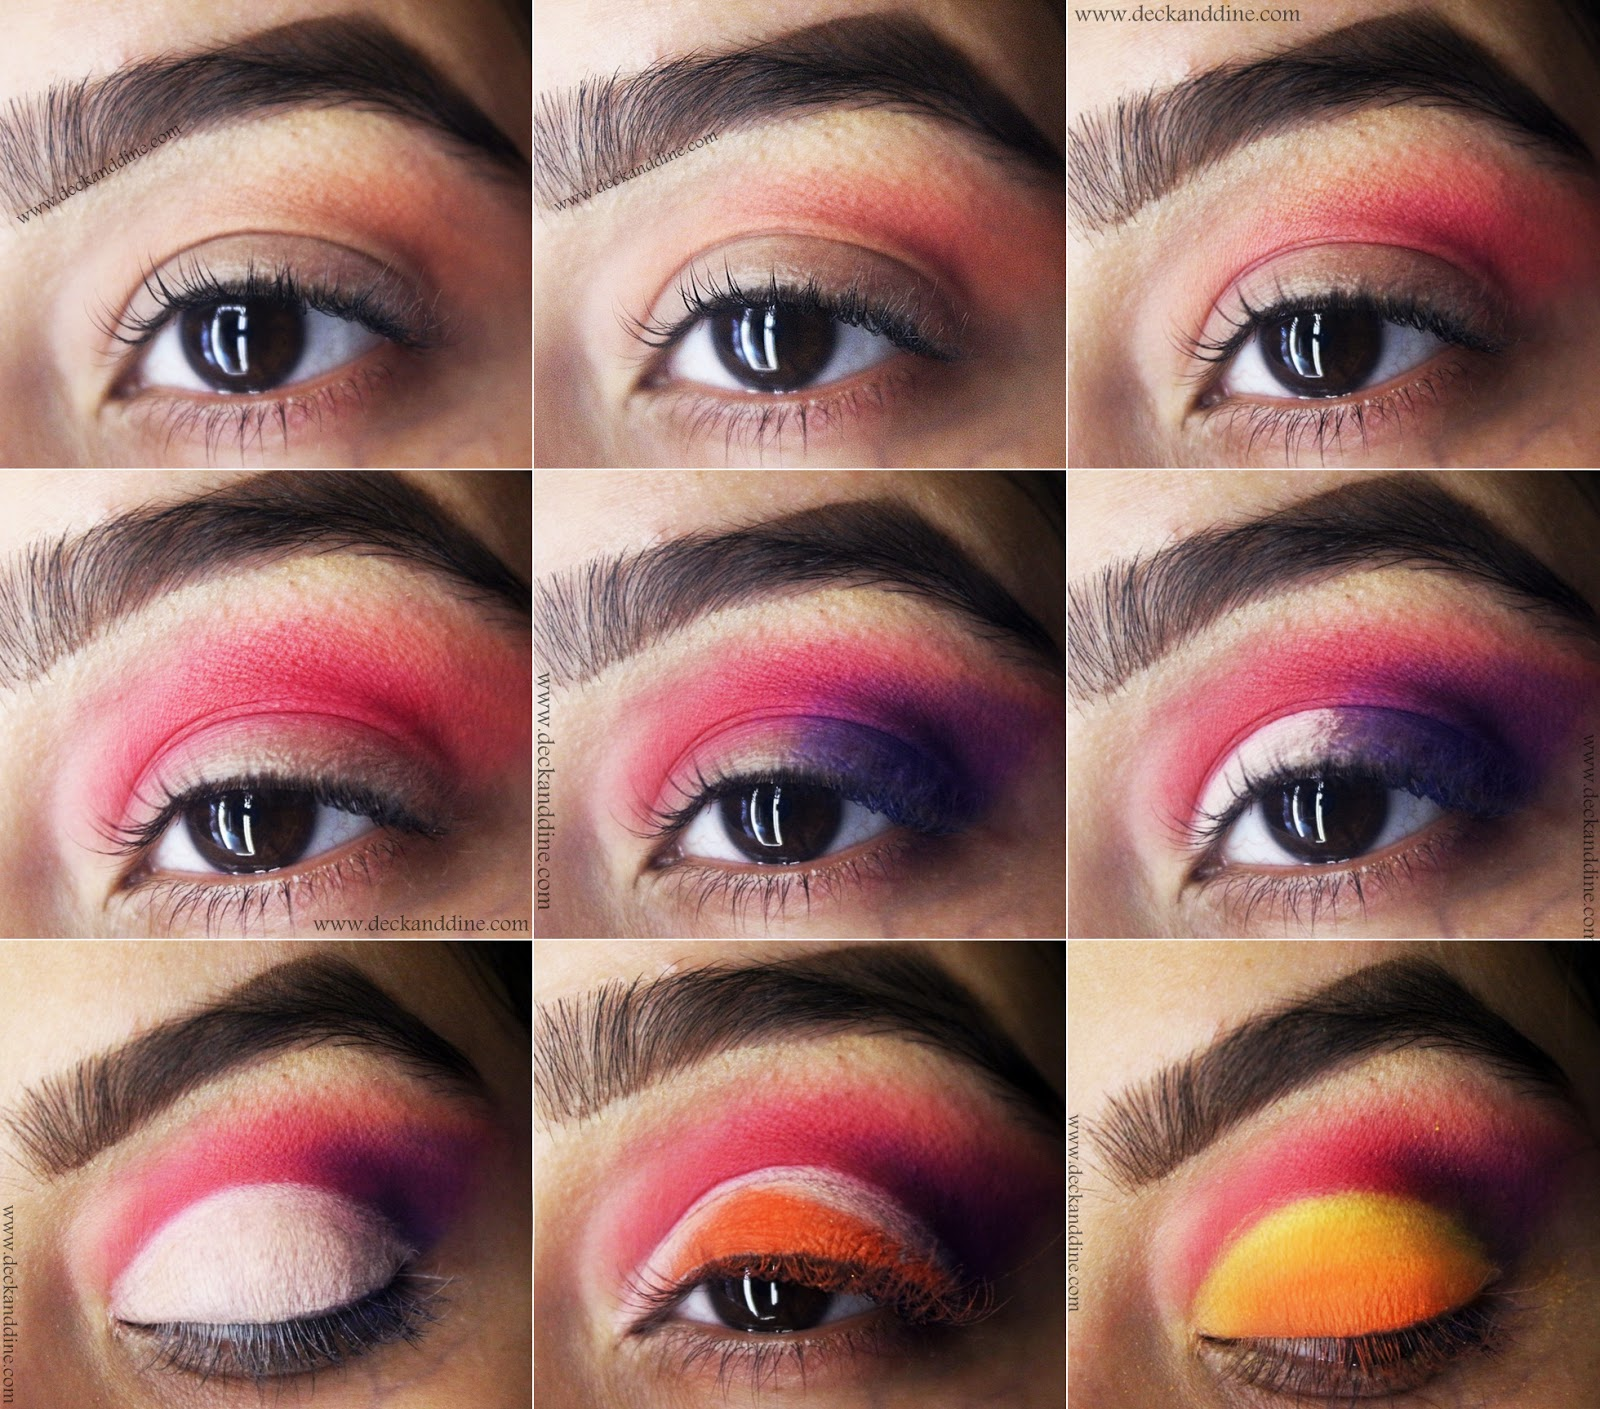 Cloud Eye Makeup Tutorial With Step By Step Pictures Deck And Dine